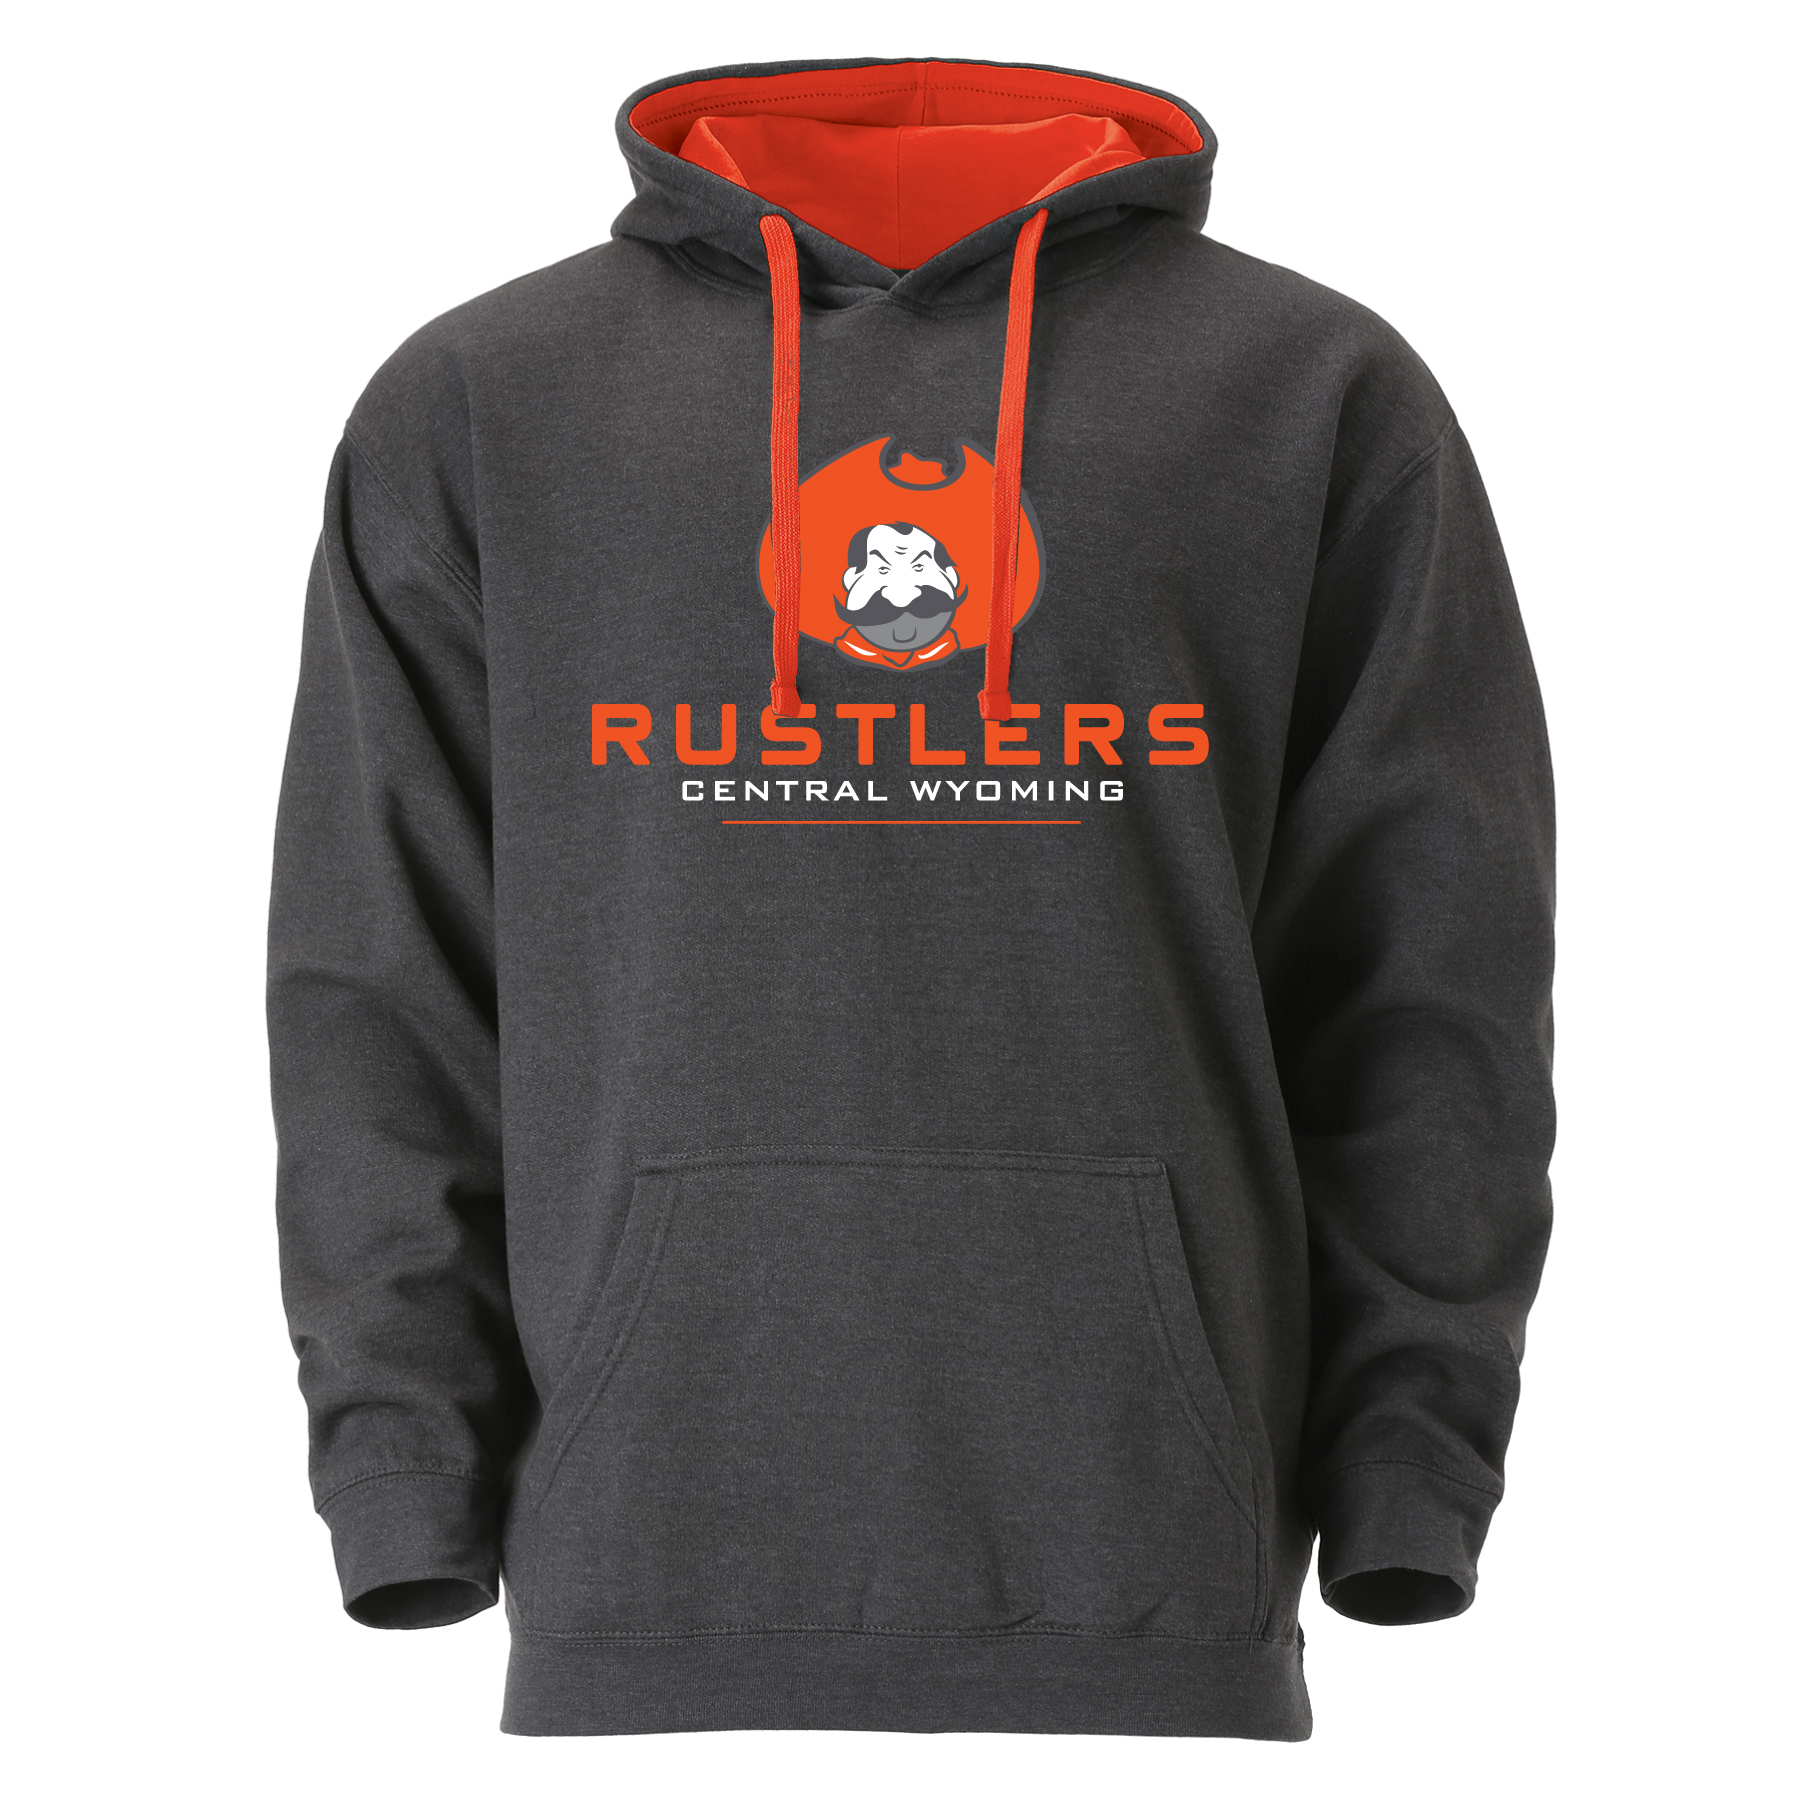 Rusty Rustlers Central Wyoming Hoodie